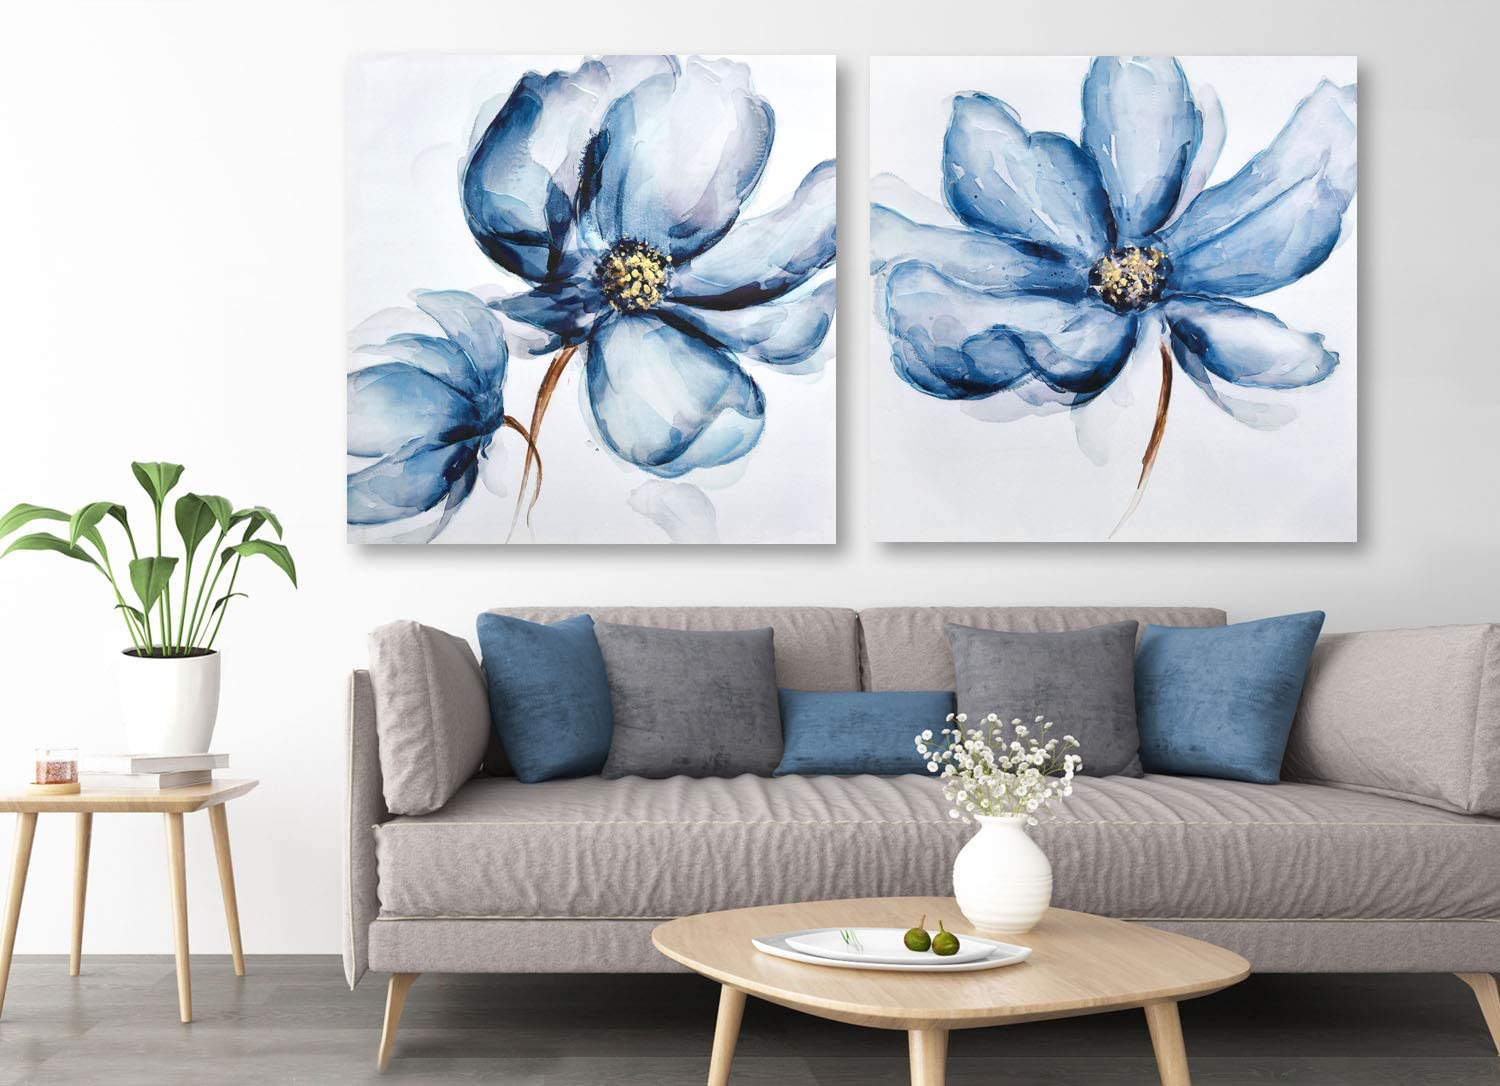 Amazon.com: Framed Canvas Wall Art for Home Decoration, 2 Panels Navy Blue  Poppies Oil Paintings, Hand Painted Modern Floral Pictures for Living Room  Bedroom Stretched Ready to Hang 56x28Inch: Posters & Prints